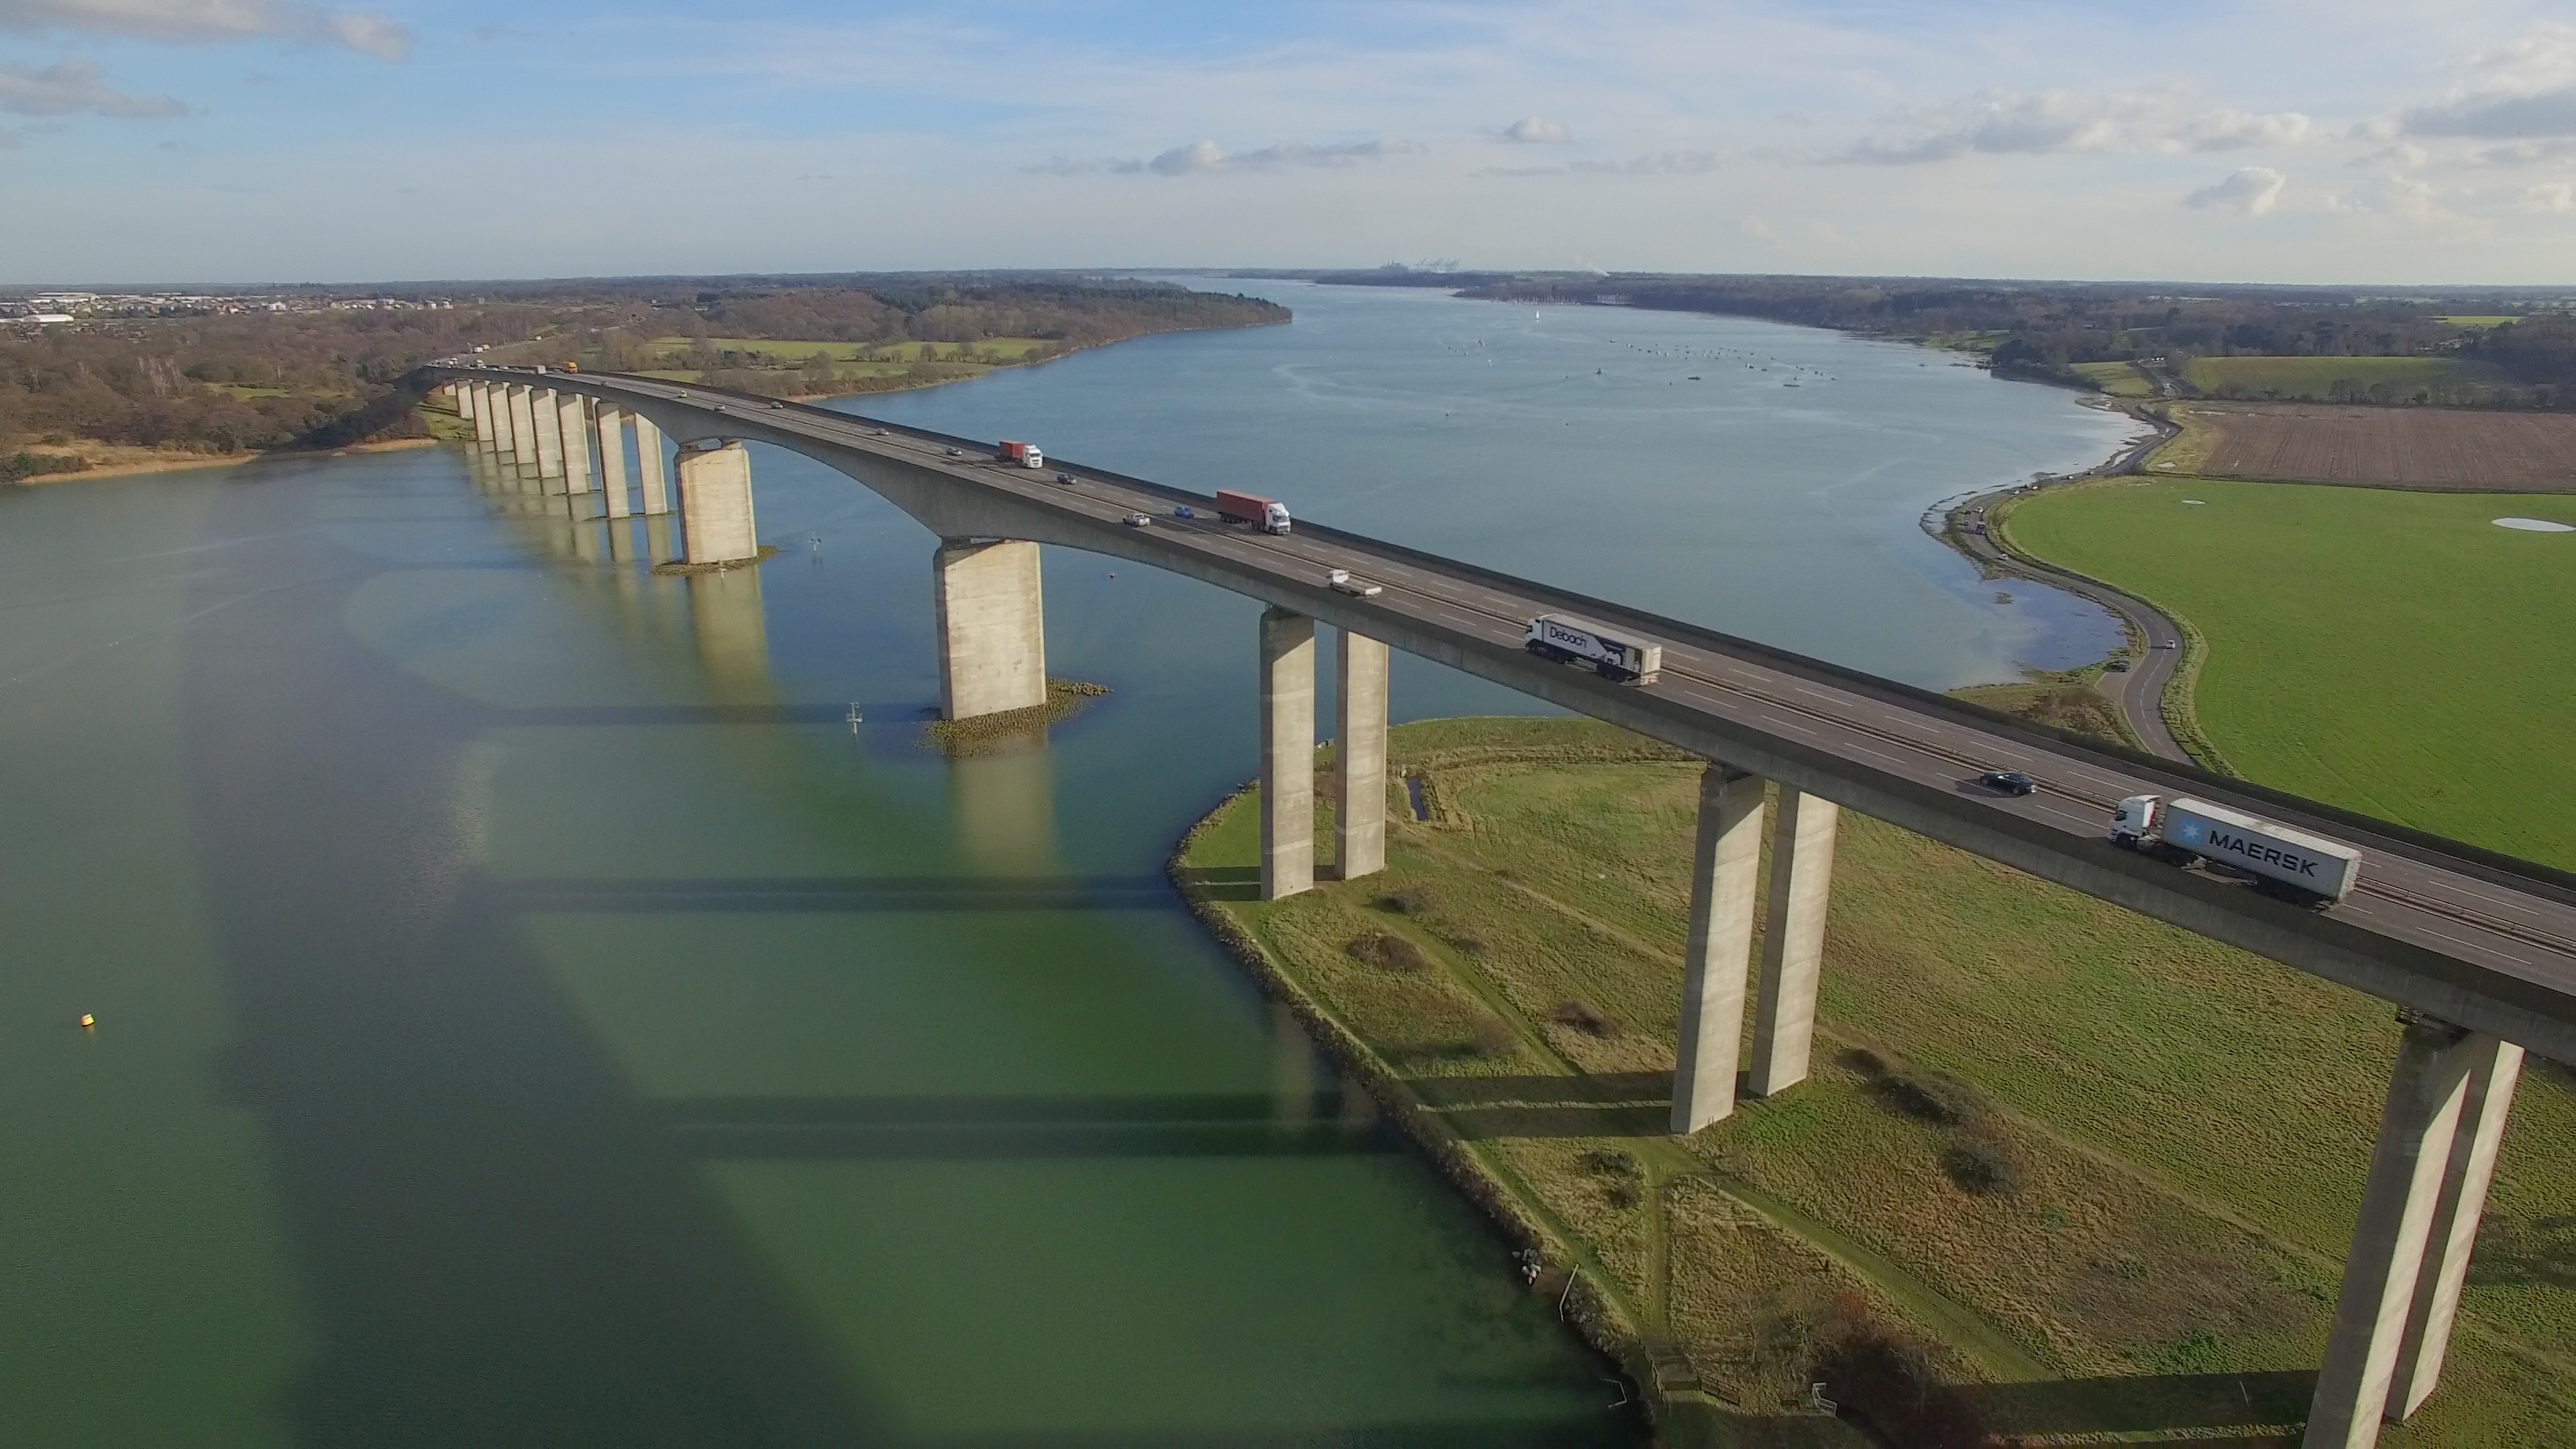 Aerial photography of Orwell Bridge from a drone